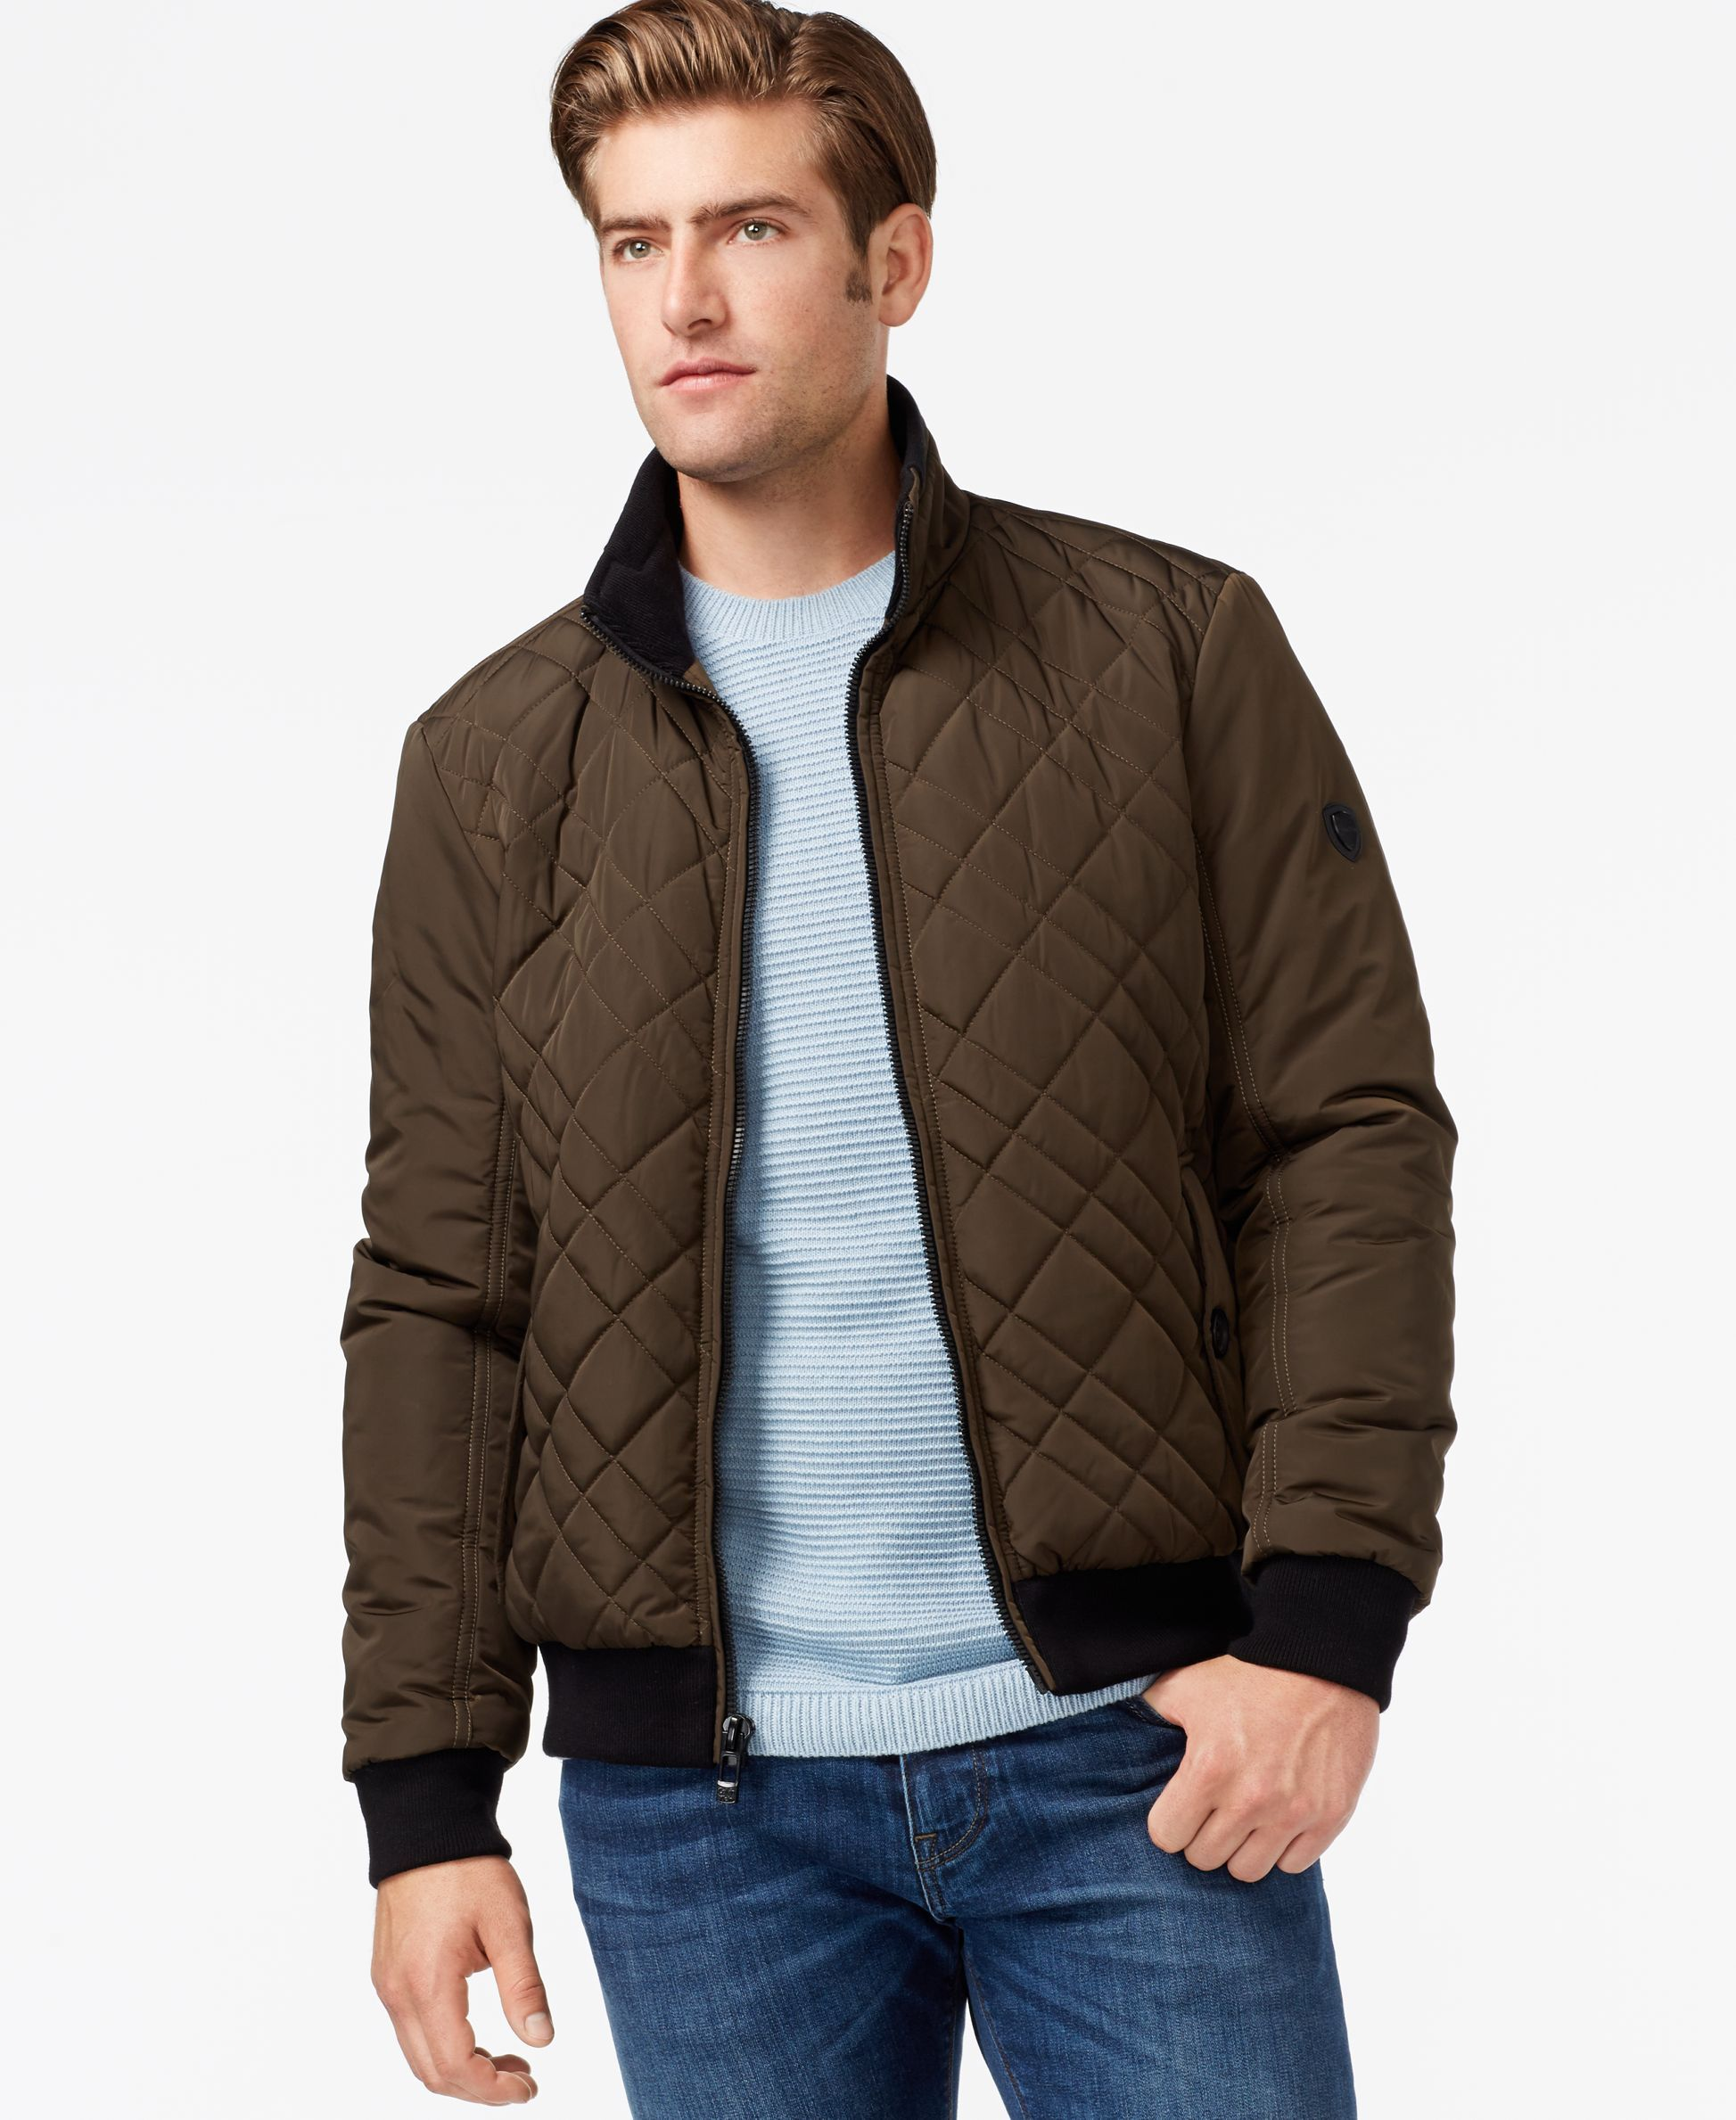 jacket juniper s men quilted price clothes competitive mens for by john jackets designer varvatos lightweight quilt p